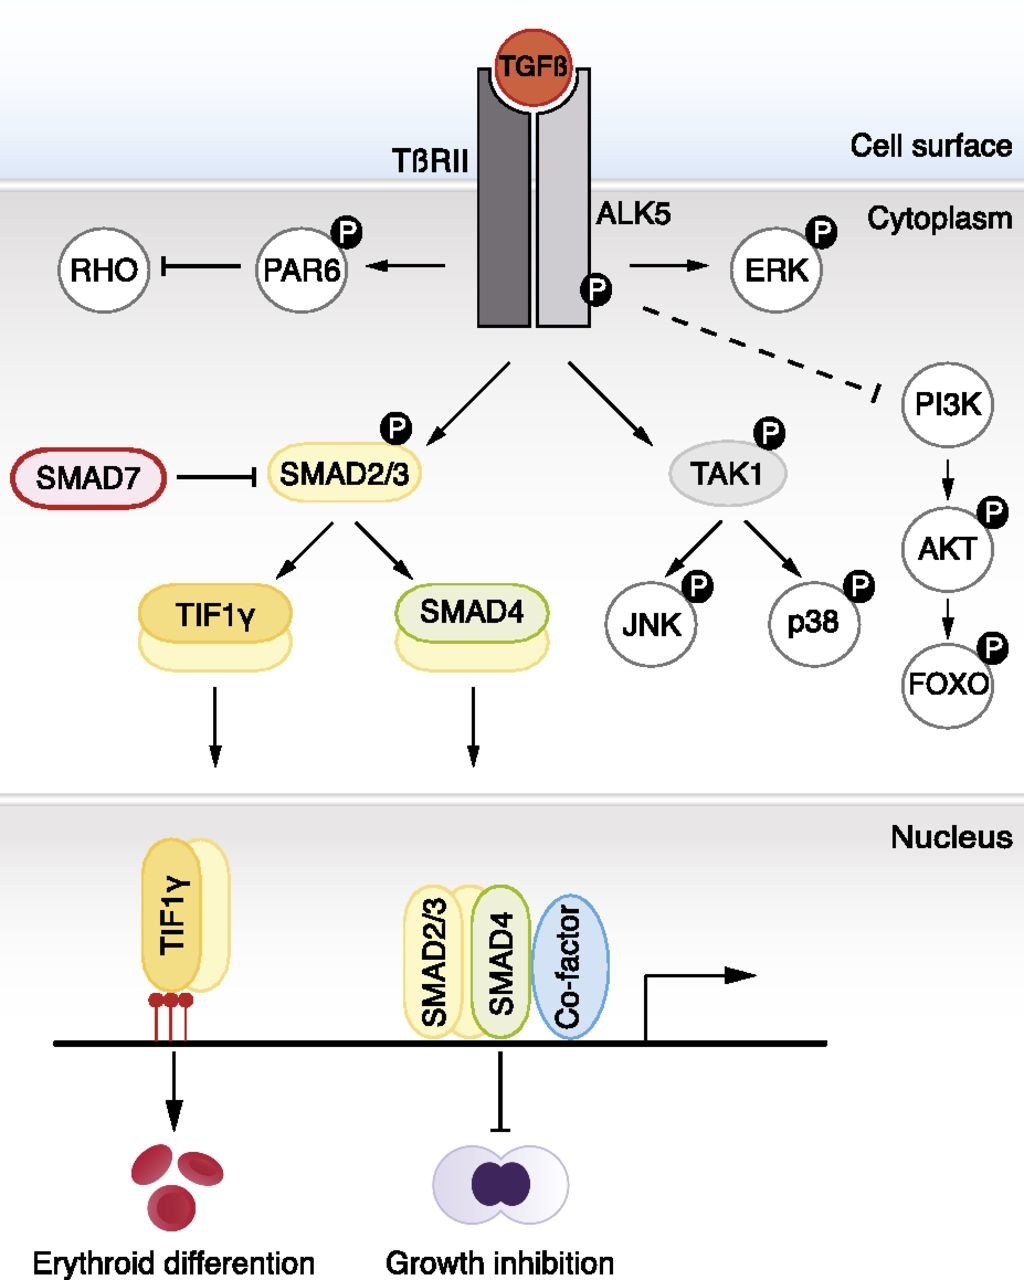 Figure 3. TGF-β ligands bind type I and type II receptors at the cell surface. Subsequently, the type I receptor (ALK5) becomes phosphorylated by the type II receptor. This leads to phosphorylation of SMAD2 and SMAD3, which form a complex with SMAD4. Activated complexes accumulate in the nucleus where they cooperate with DNA-binding cofactors to regulate target gene transcription. SMAD2 and SMAD3 also bind to TIF1γ. In embryonic stem cells, SMAD2/3-TIF1γ recognizes specific chromatin marks, promoting access of SMAD2/3-SMAD4 to otherwise repressed targets. TIF1-γ–SMAD2/3 promotes erythroid differentiation whereas SMAD4-SMAD2/SMAD3 complexes inhibit proliferation. In certain cell types, JNK and p38 are phosphorylated by TAK1 and constitute, together with the PI3K-AKT-FOXO axis, ERK, and PAR6, so-called noncanonical signaling responses to TGF-β. The dashed line indicates unclear molecular mechanism. http://www.bloodjournal.org/content/125/23/3542?sso-checked=true